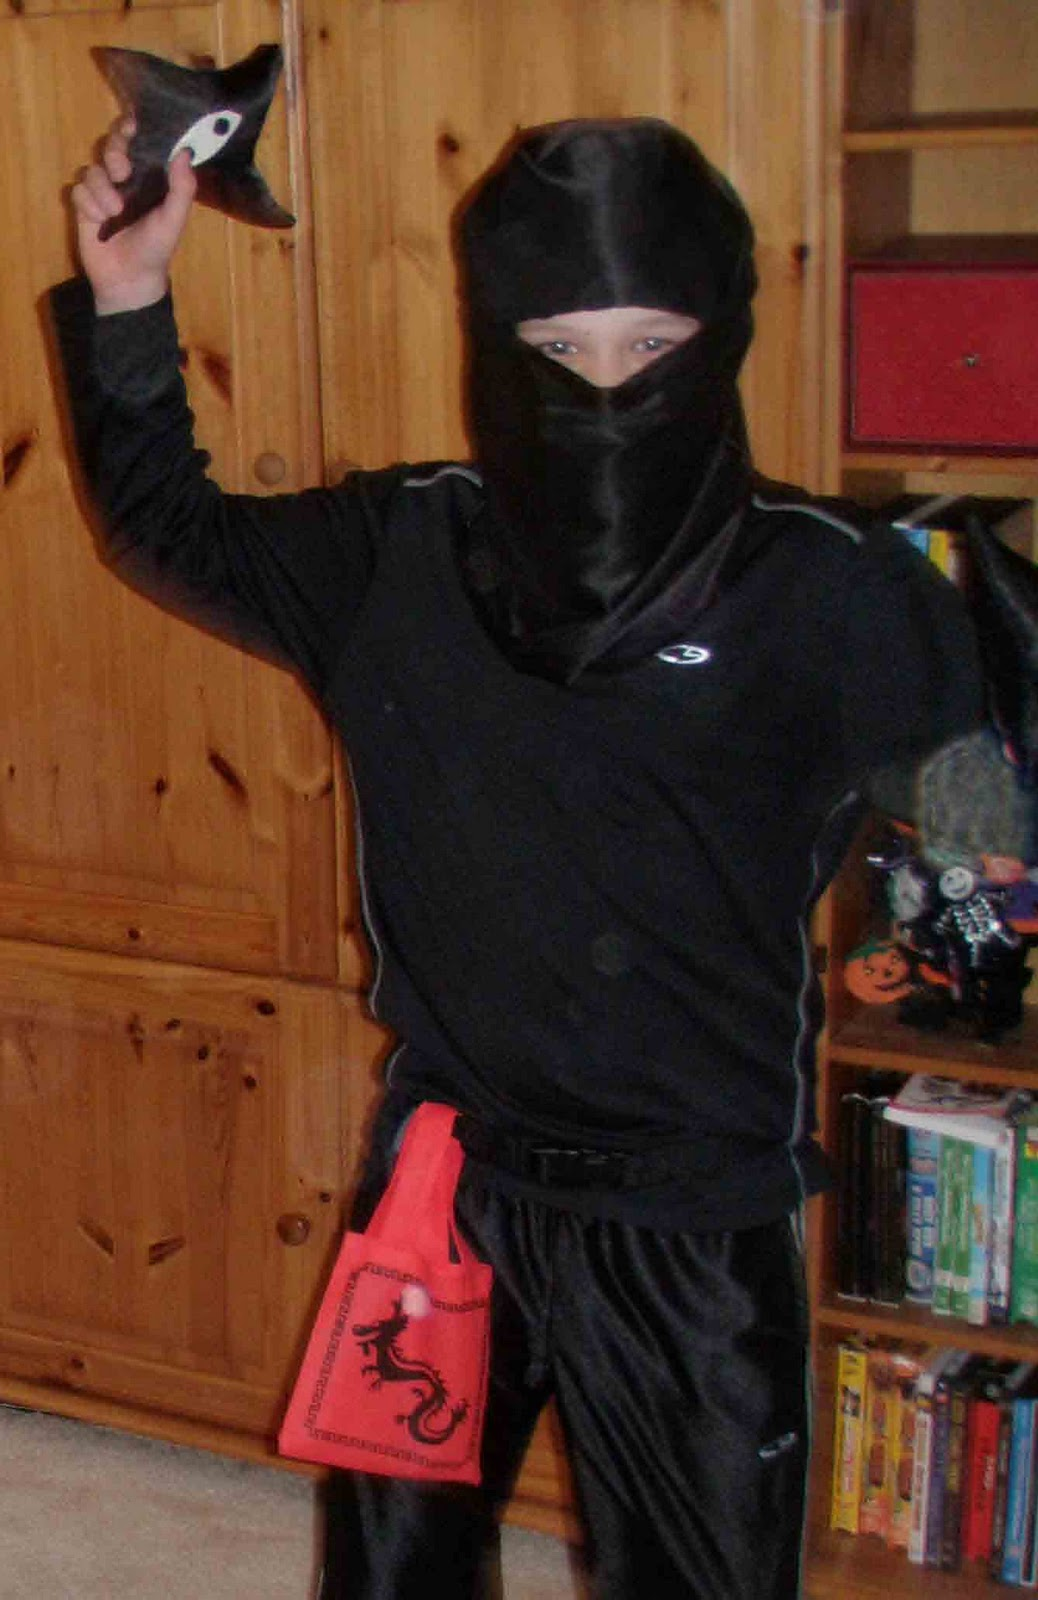 Black t shirt ninja mask - Black T Shirt Ninja Mask 11